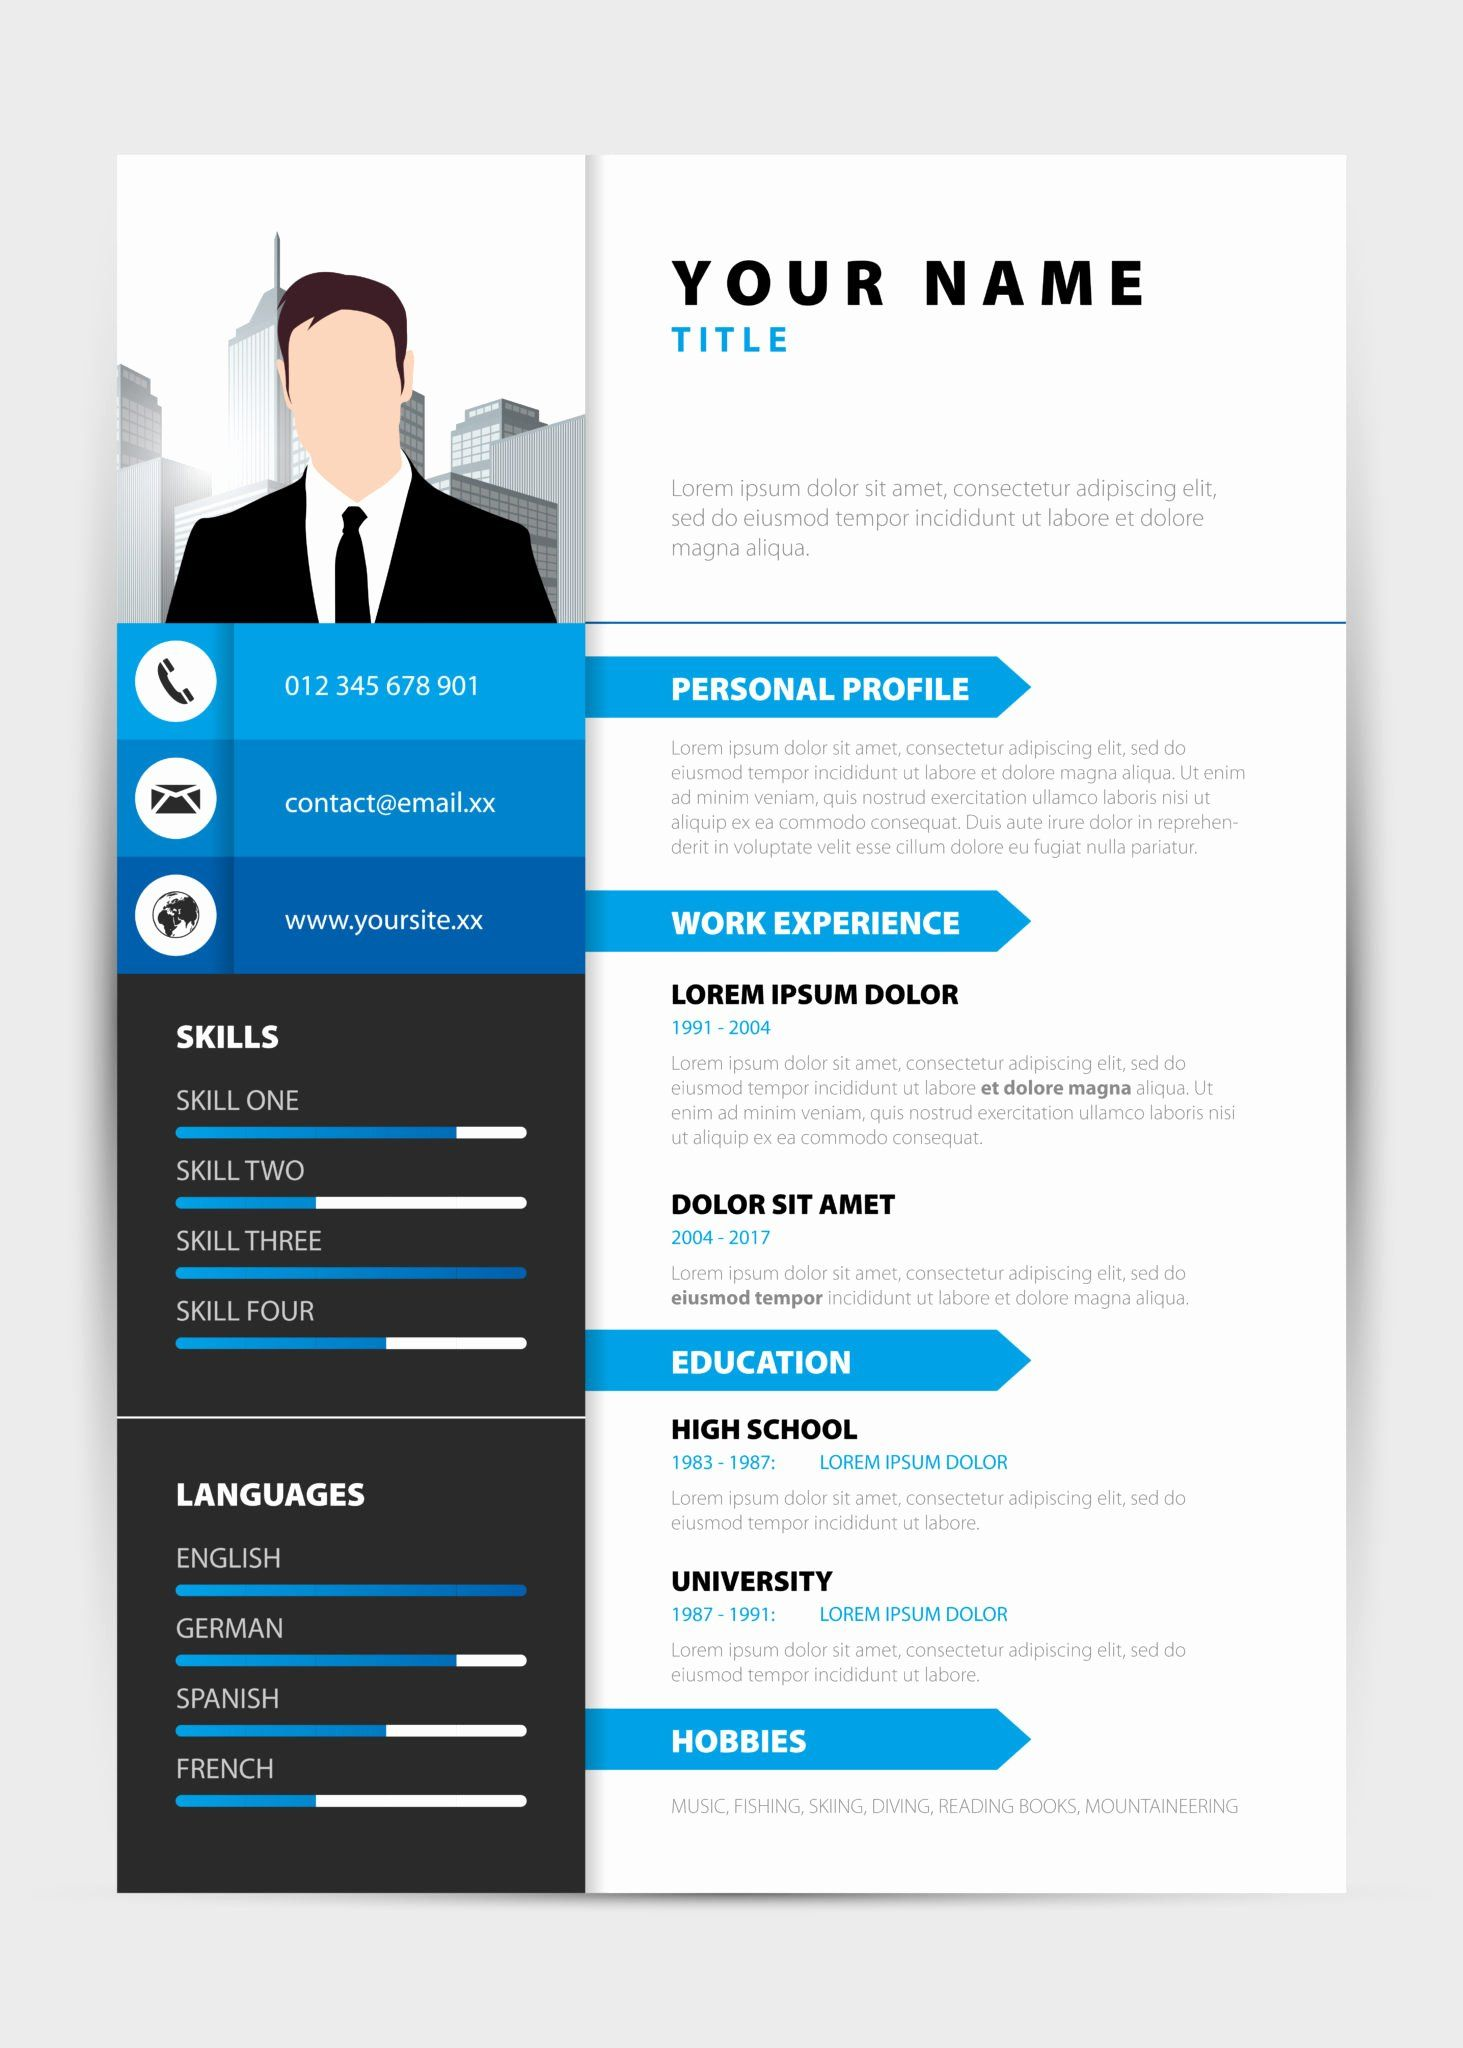 Aws Cloud Engineer Resume Awesome Aws Resume How To Make Your Resume Look Attractive Resume Best Resume Template Education Resume